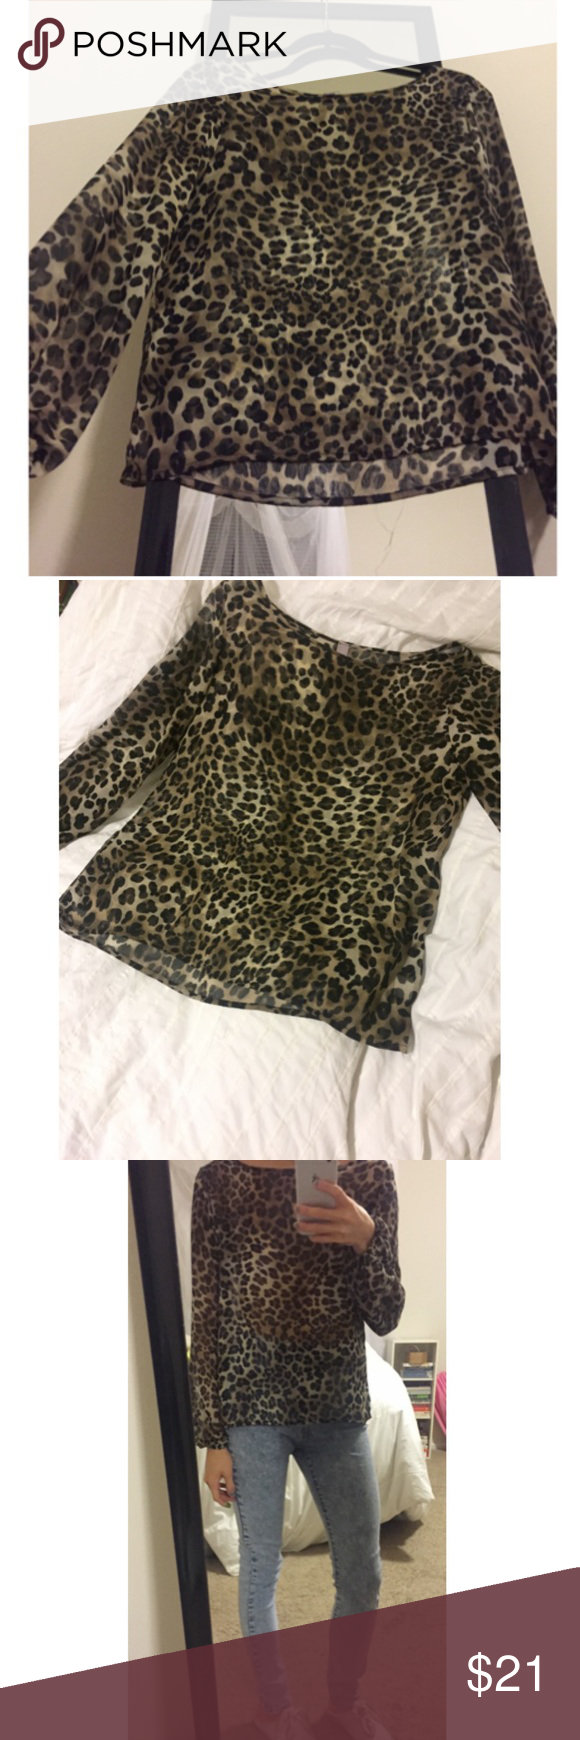 Silky leopard print blouse This beautiful too has elastic sleeves that are so flattering. It can be dressed up or down, which I've demonstrated in the photos. It has been worn a few times but is in tip-top shape. I happened to be looking for flaws for you guys, so I noticed one tiny run in the fabric on the left shoulder, so it has been priced accordingly. Feel free to make a reasonable offer. Francesca's Collections Tops Blouses